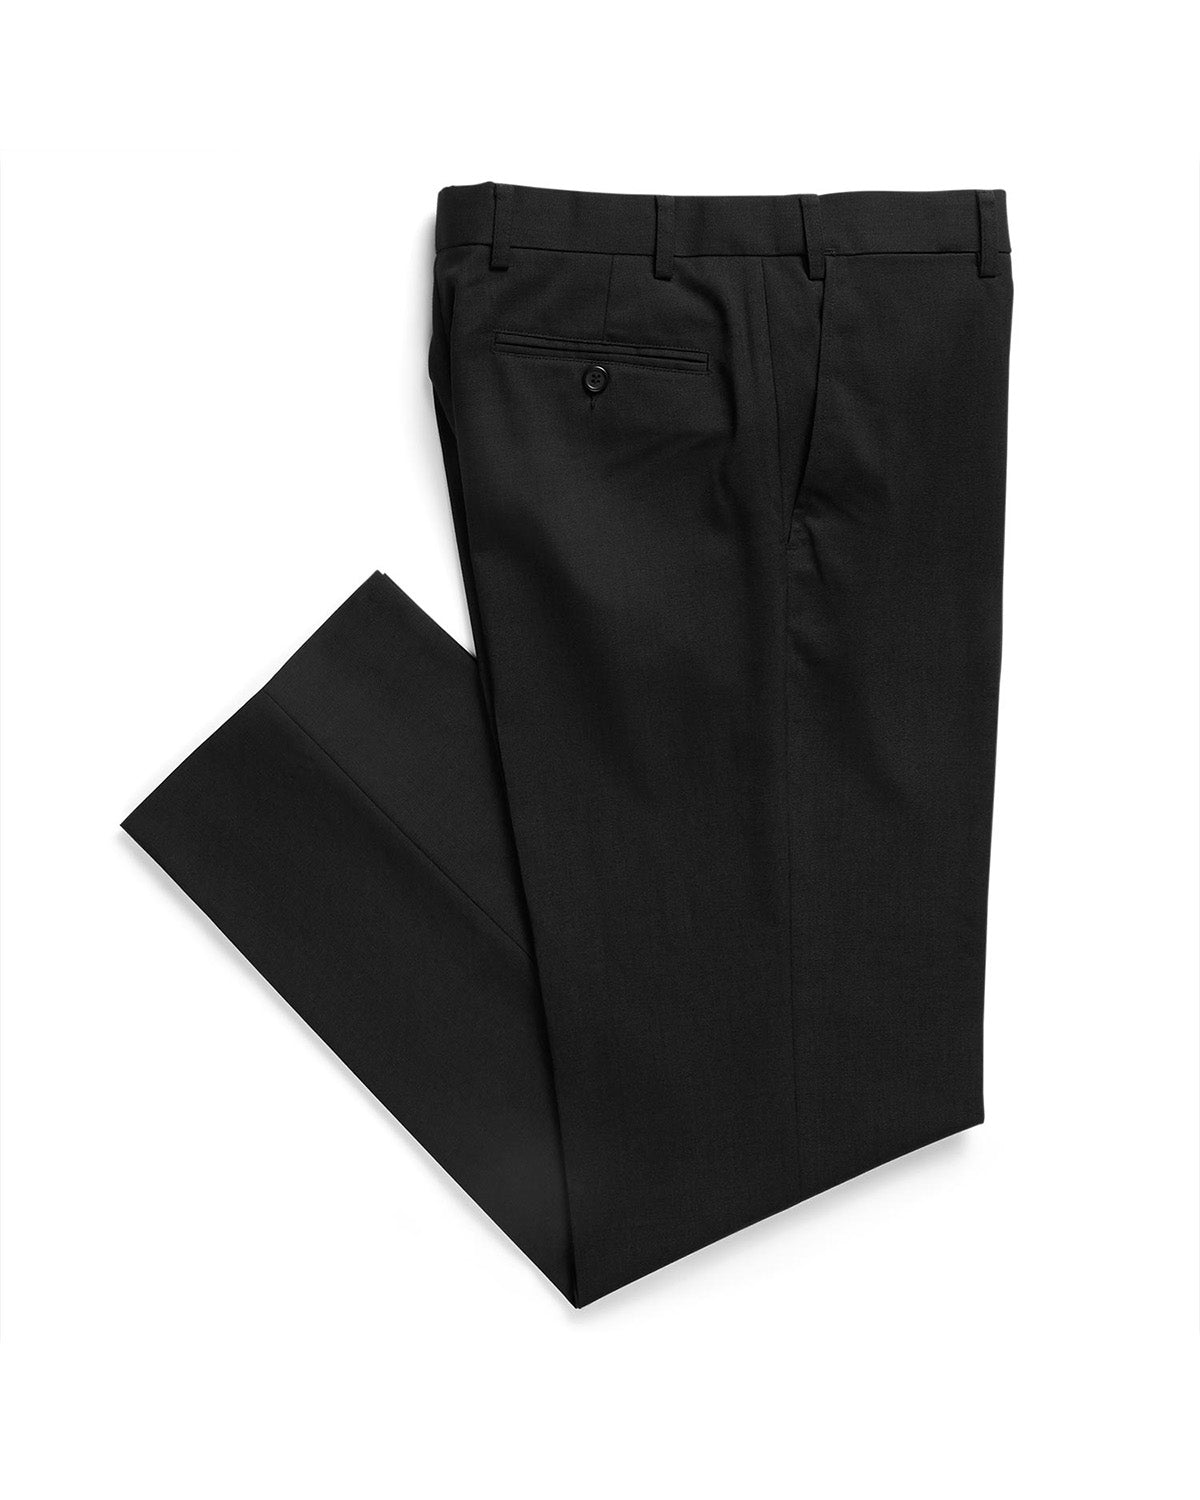 Mens-Elliot-Washable-Pant-1722mt-career-by-gloweave